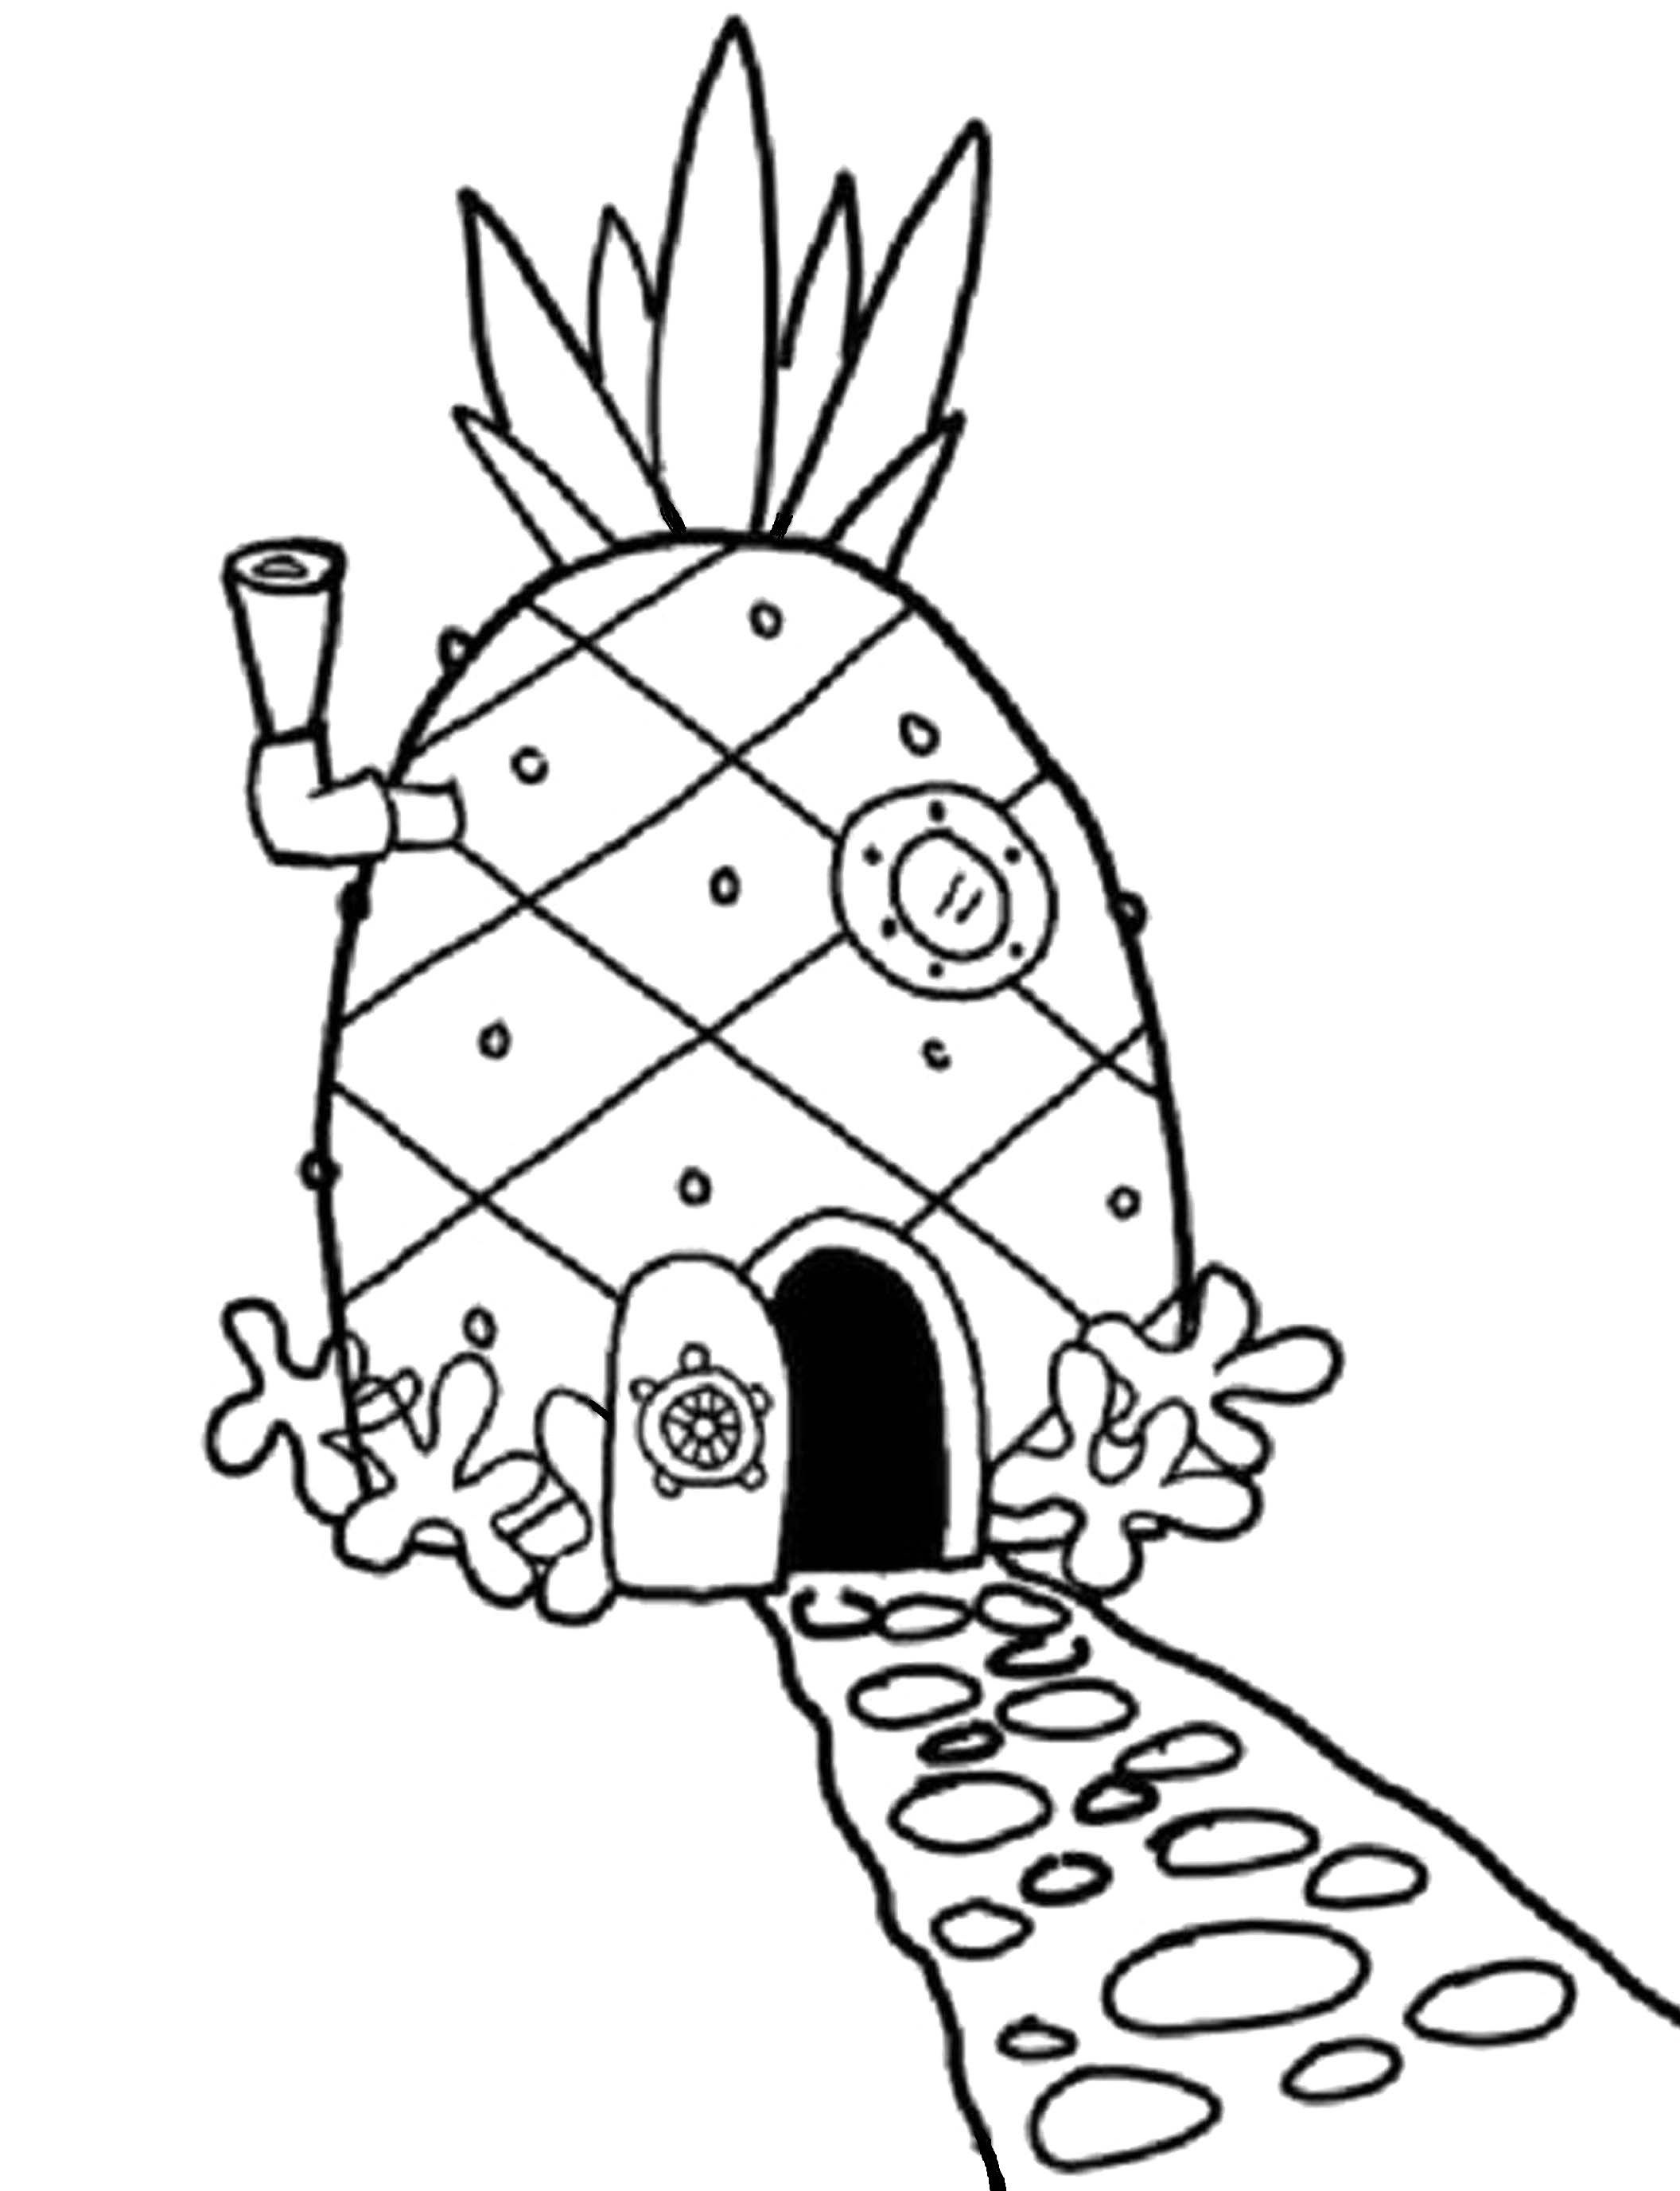 spongebobs pineapple house coloring pages spongebob house coloring pages with images spongebob house pineapple pages coloring spongebobs